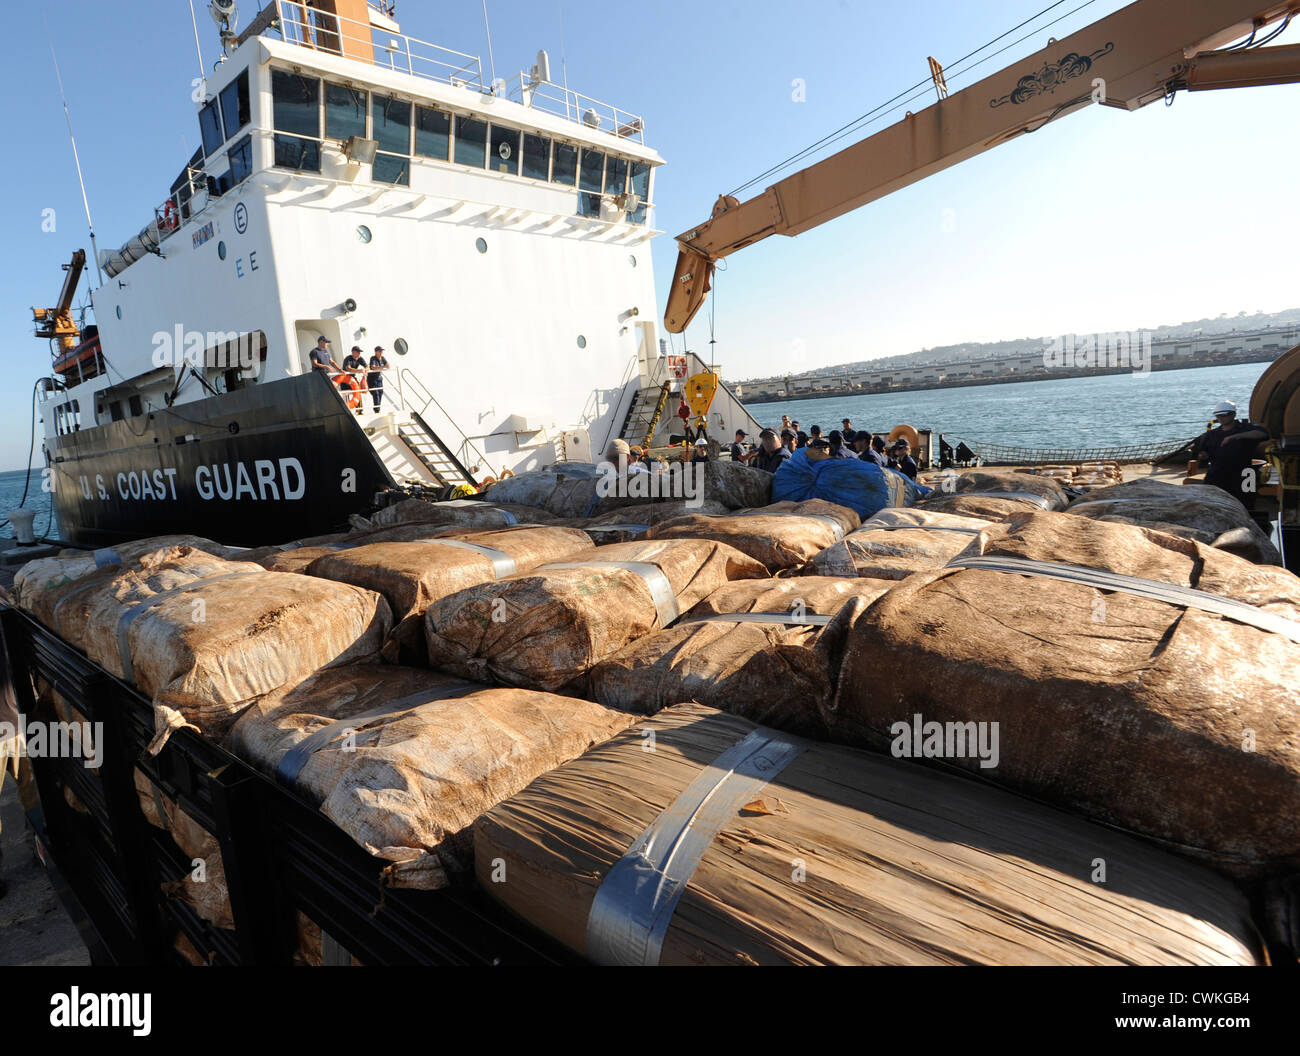 The crew of San Francisco-based Coast Guard Cutter Aspen offloads approximately 8,500 pounds of marijuana at Coast - Stock Image